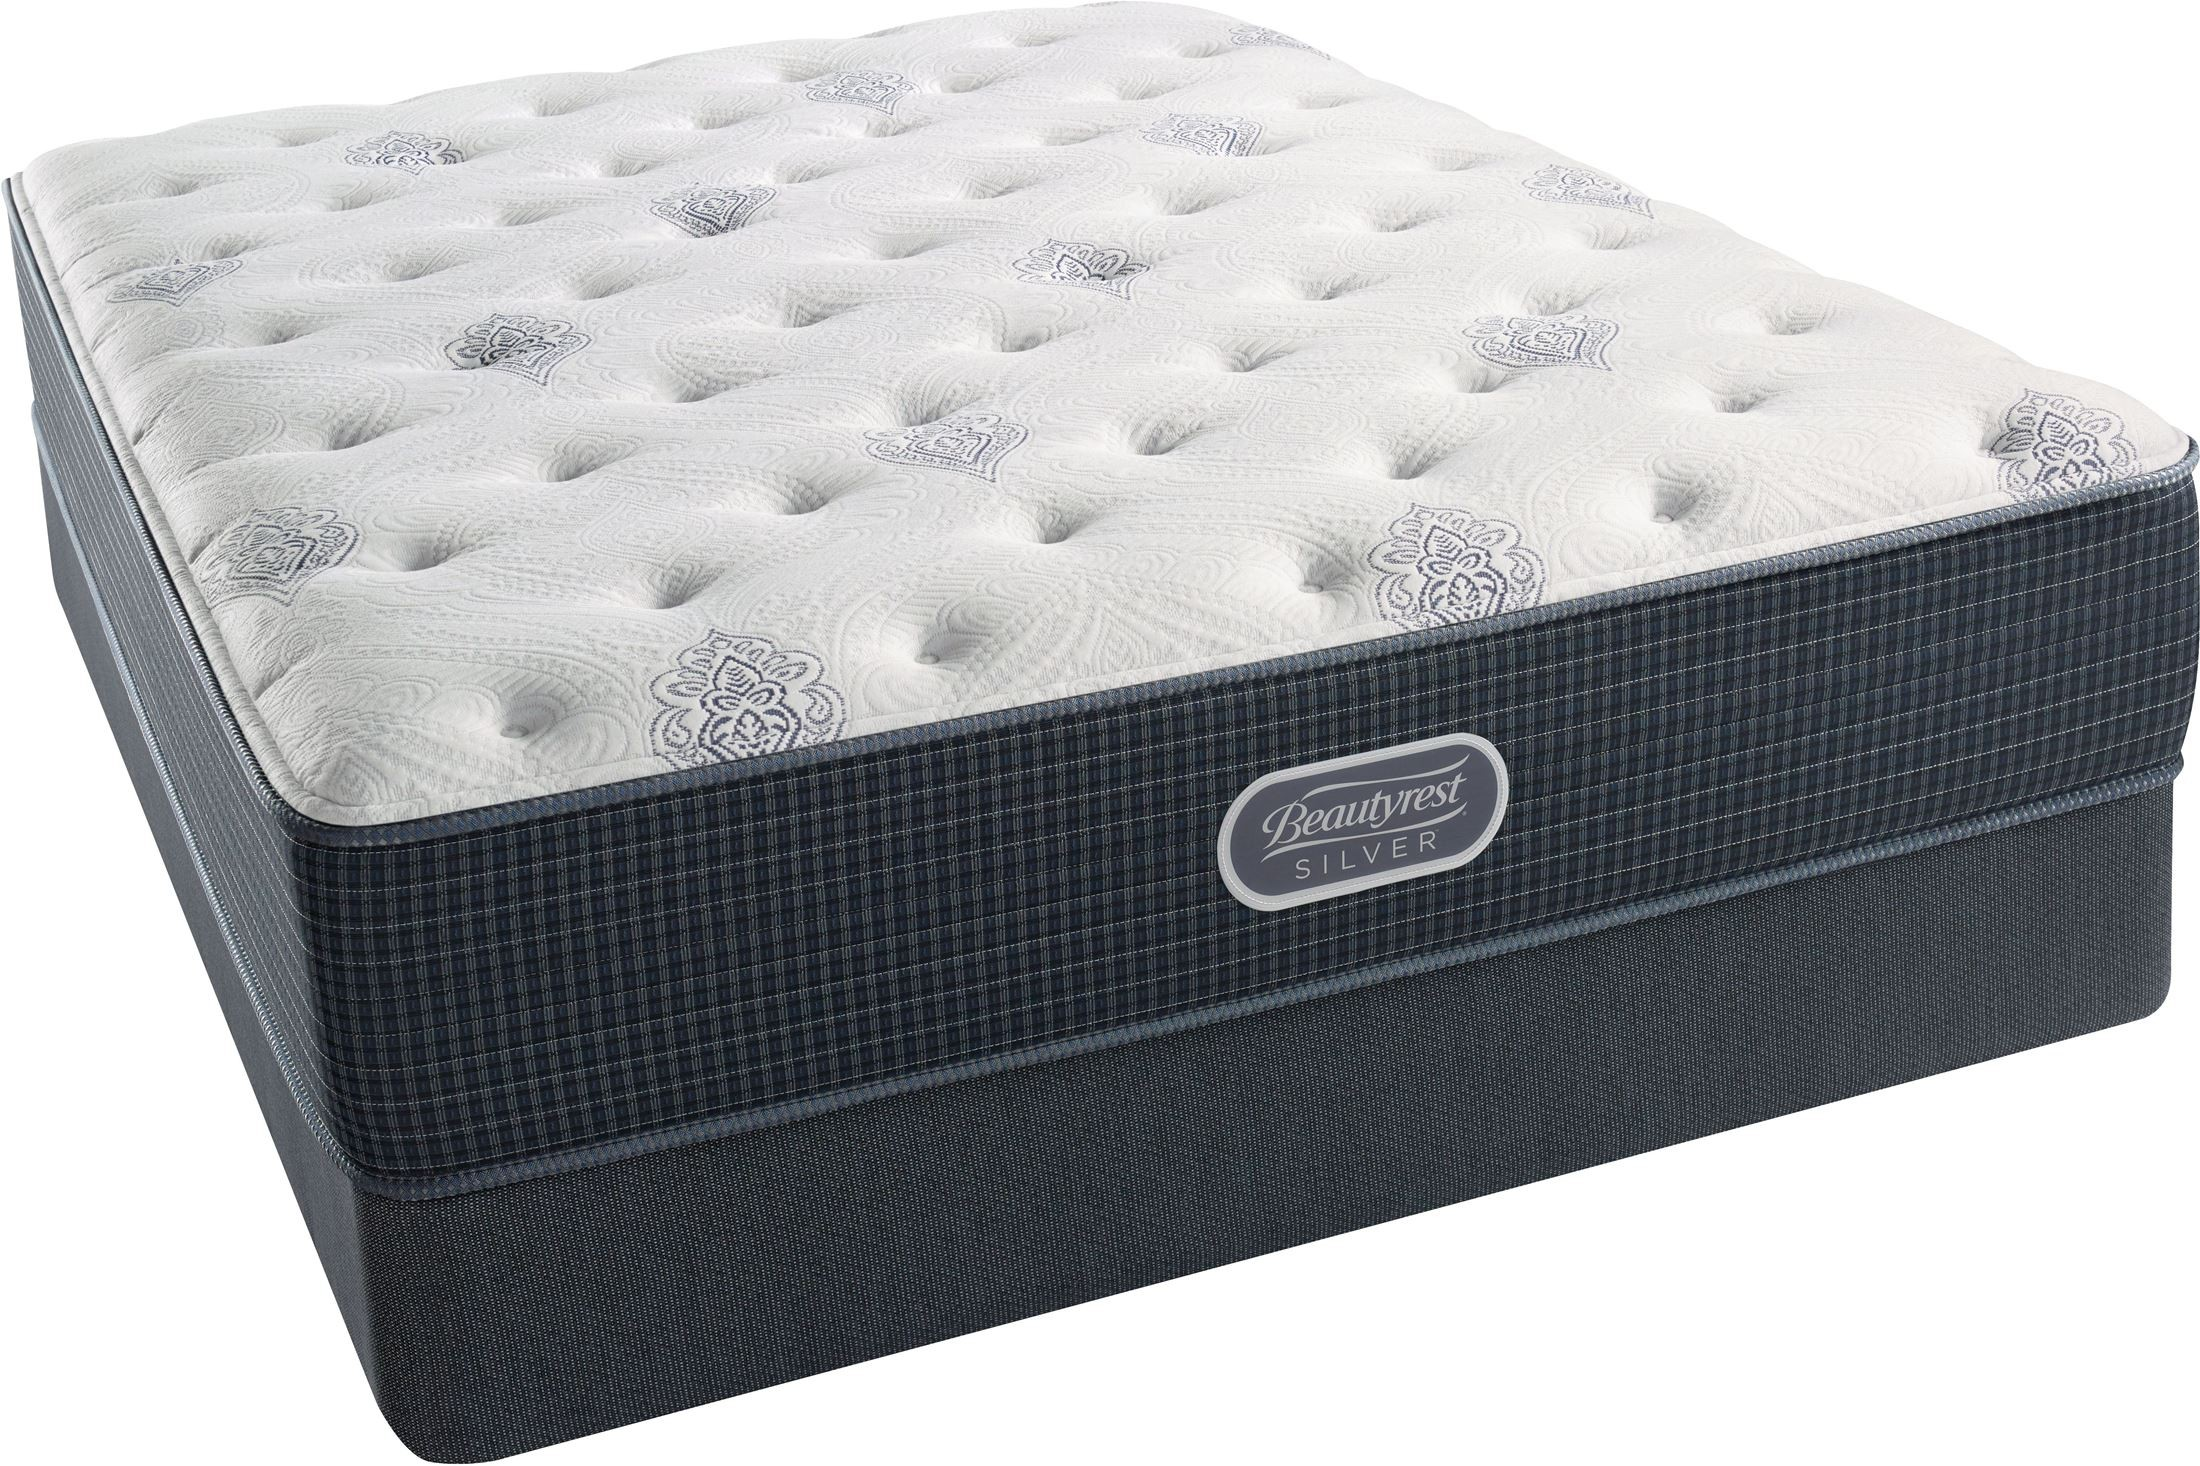 Beautyrest Recharge Silver Courtyard Blue Tight Top Plush